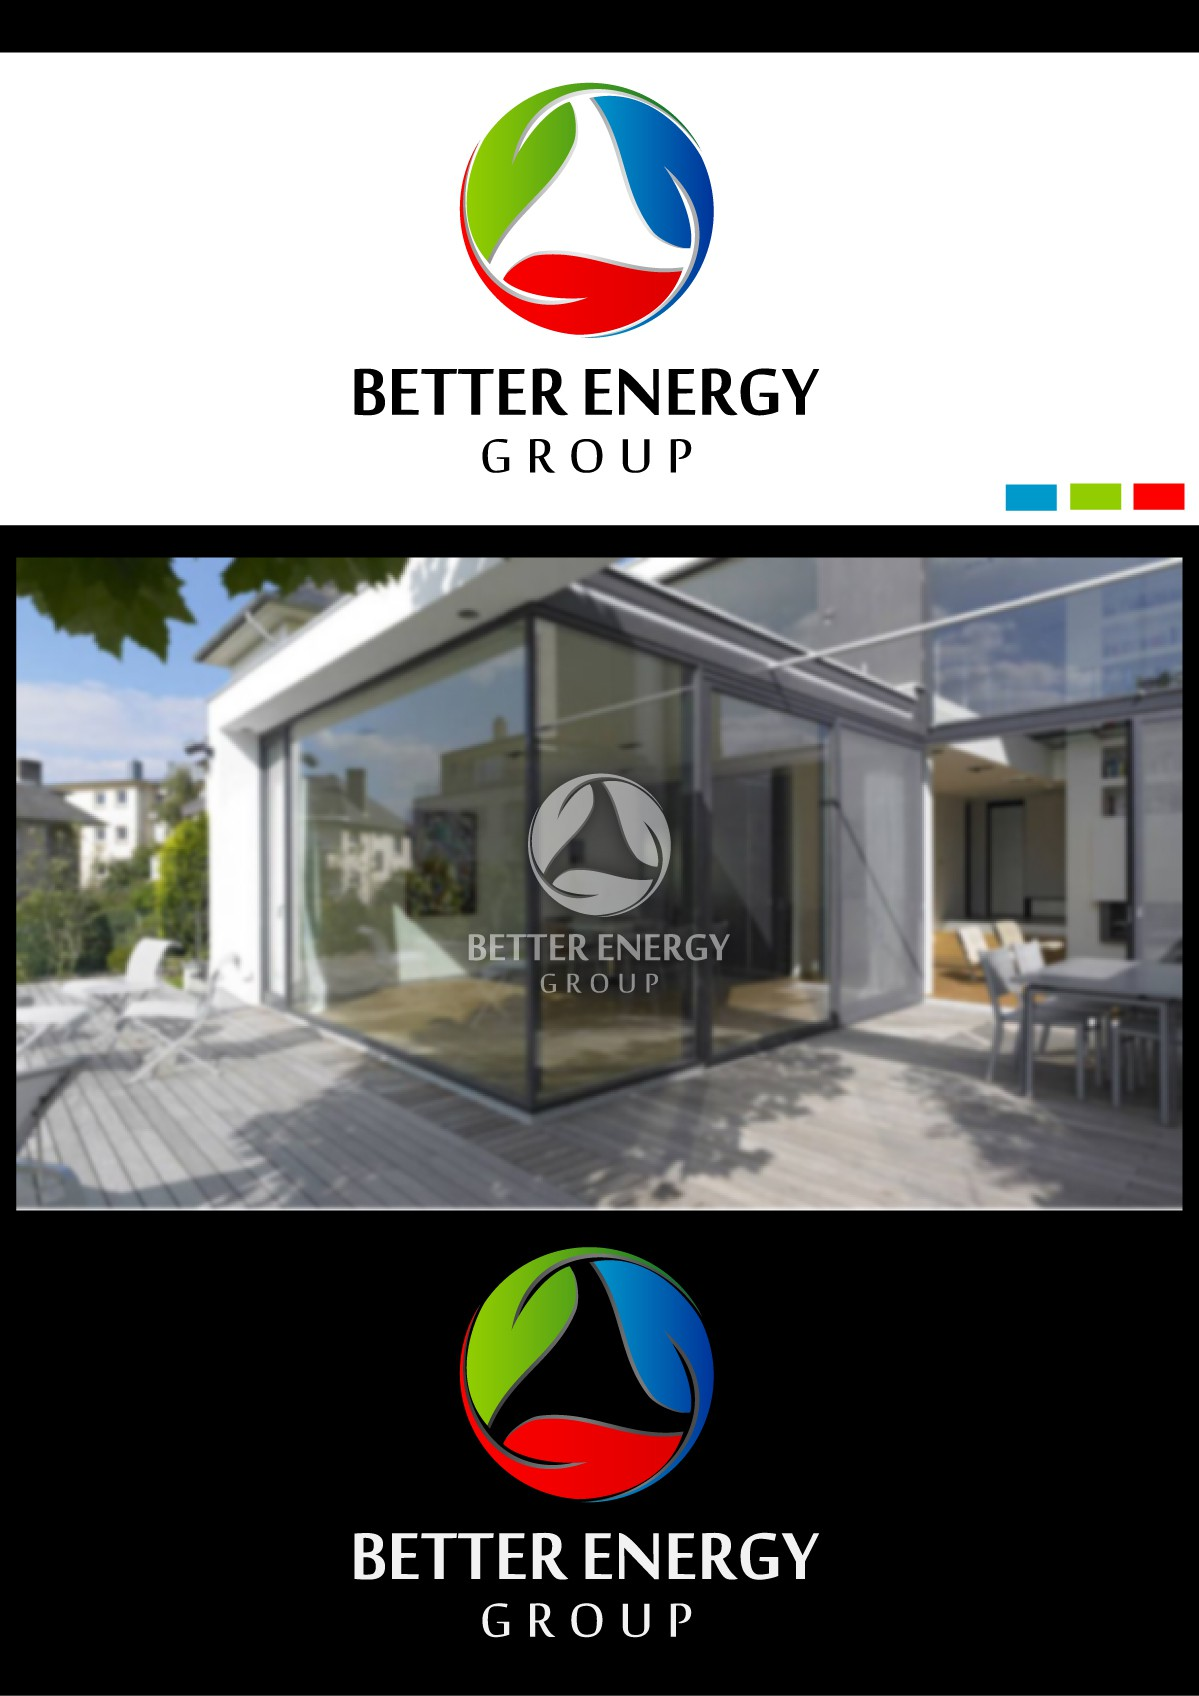 Help Better Energy Group with a new logo